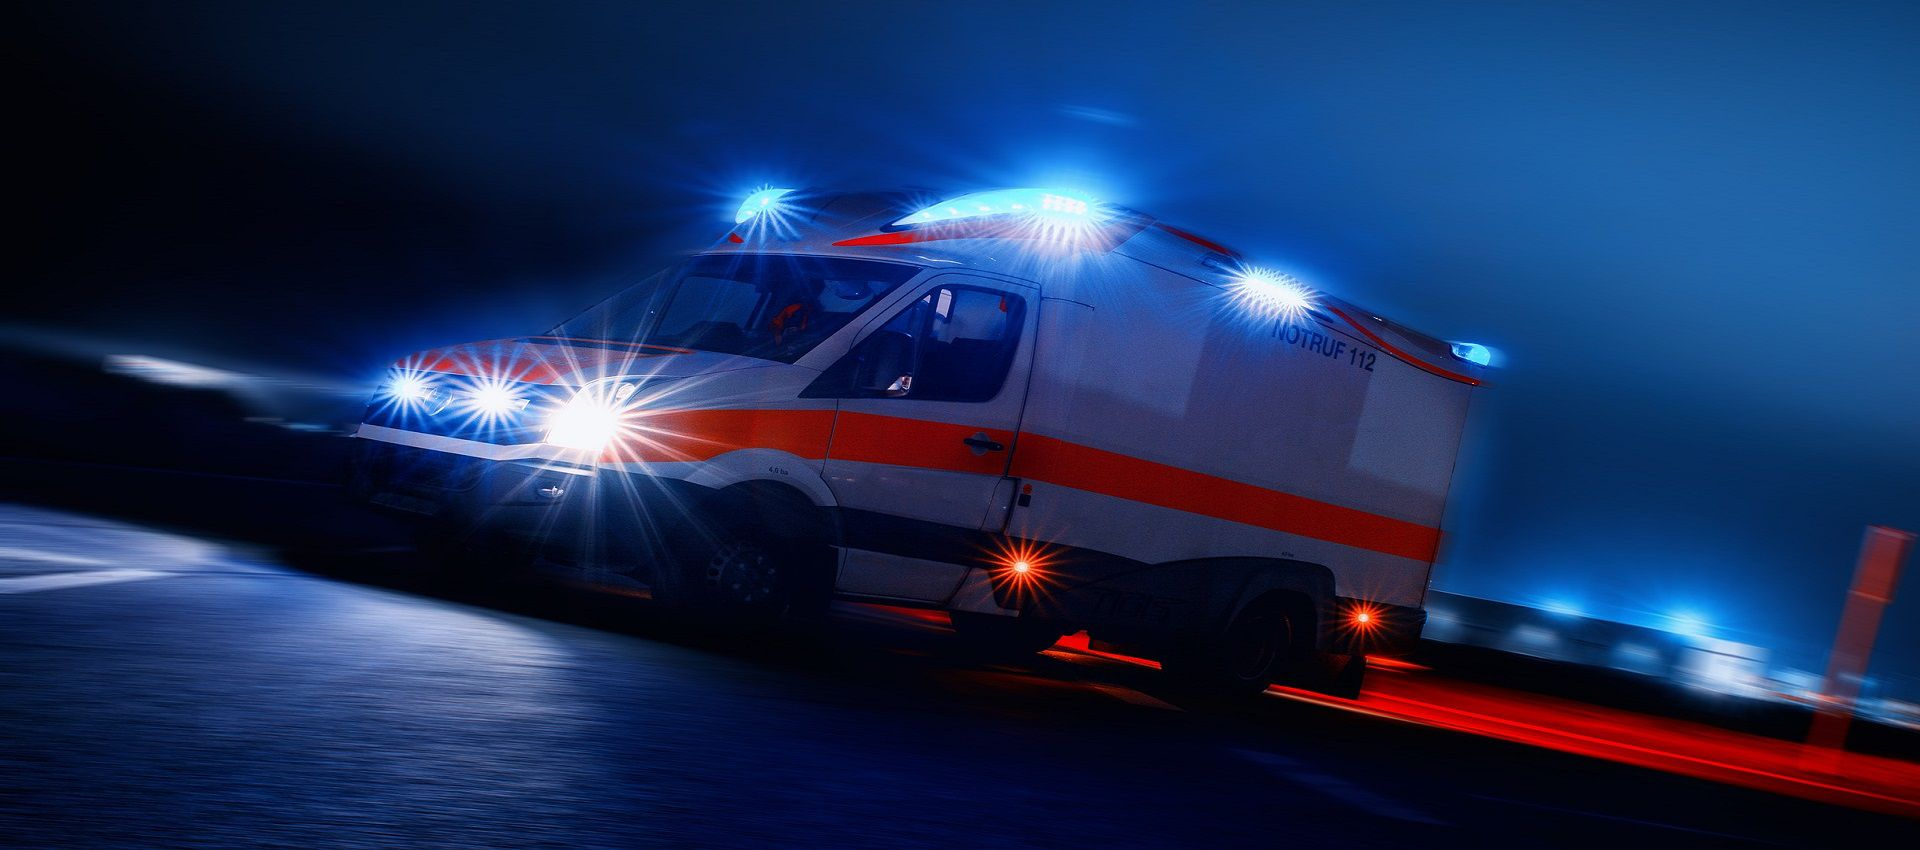 transport-ambulance-lyon-1_